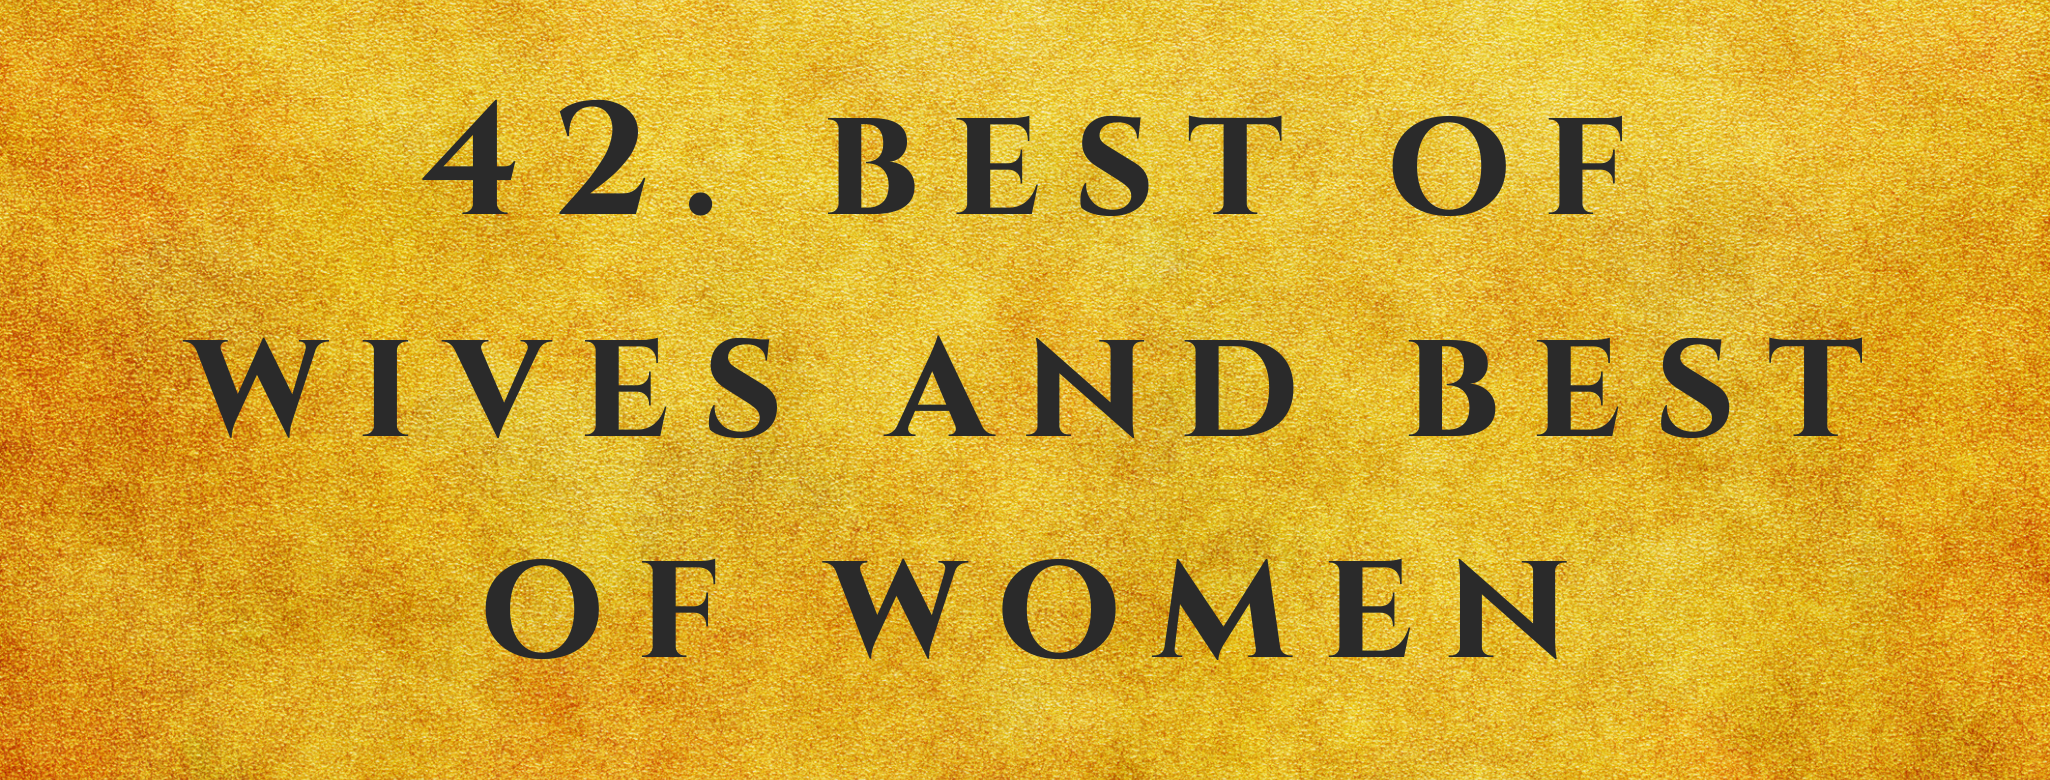 #42 Best of Wives and Best of Women